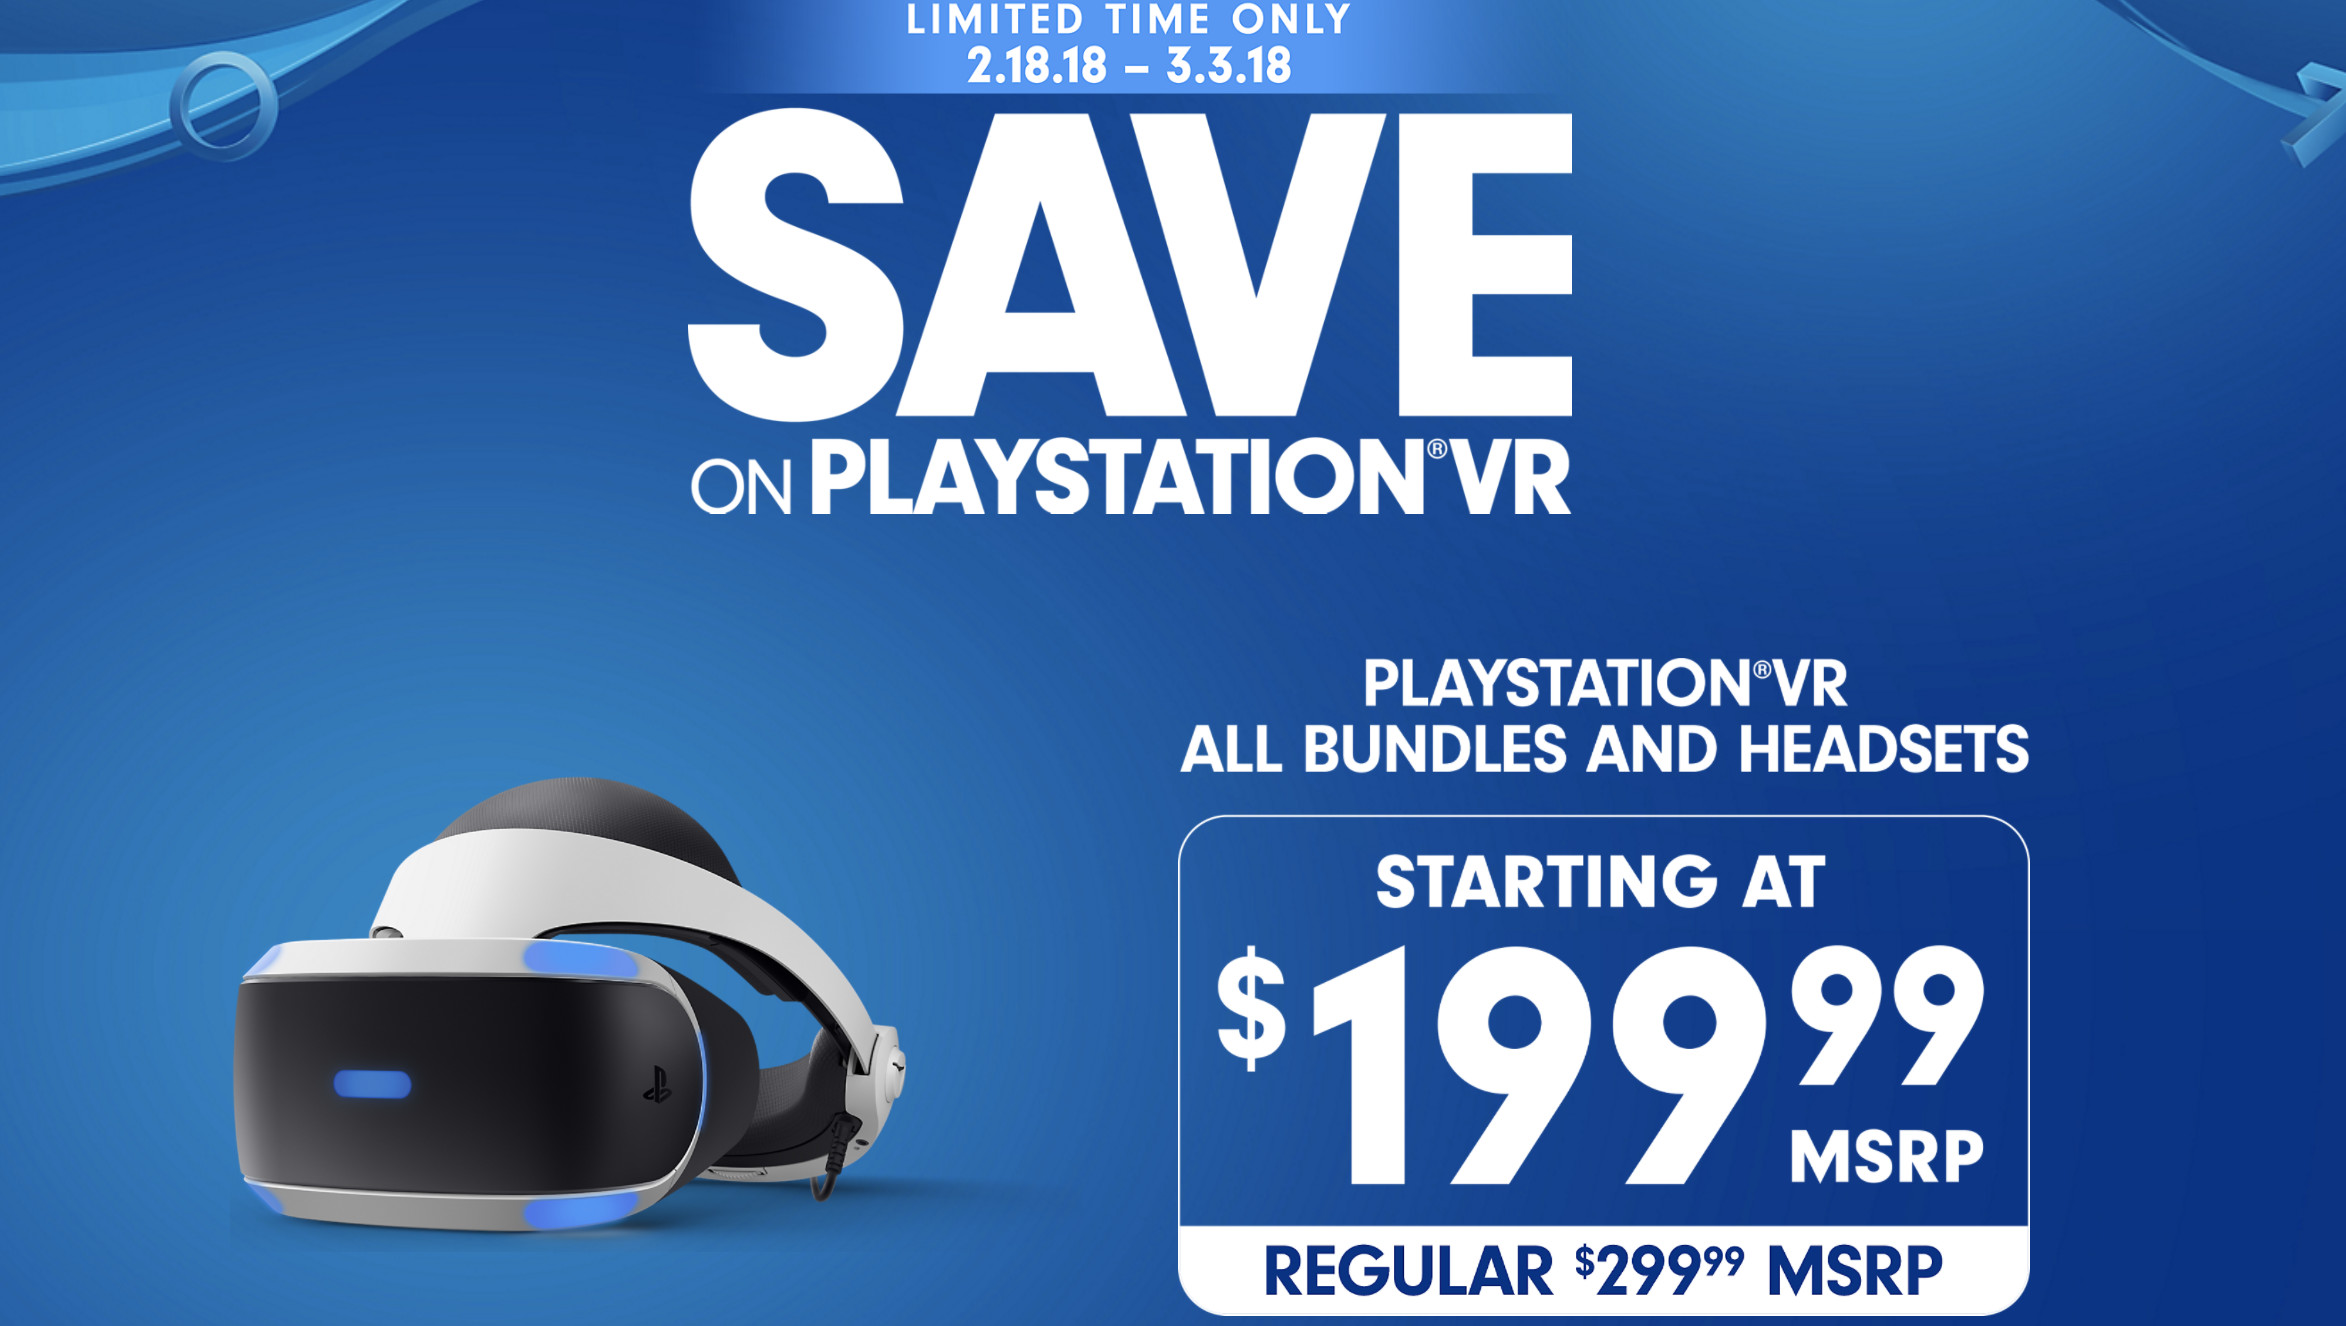 Sony PlayStation VR bundle discount matches best-ever price in US